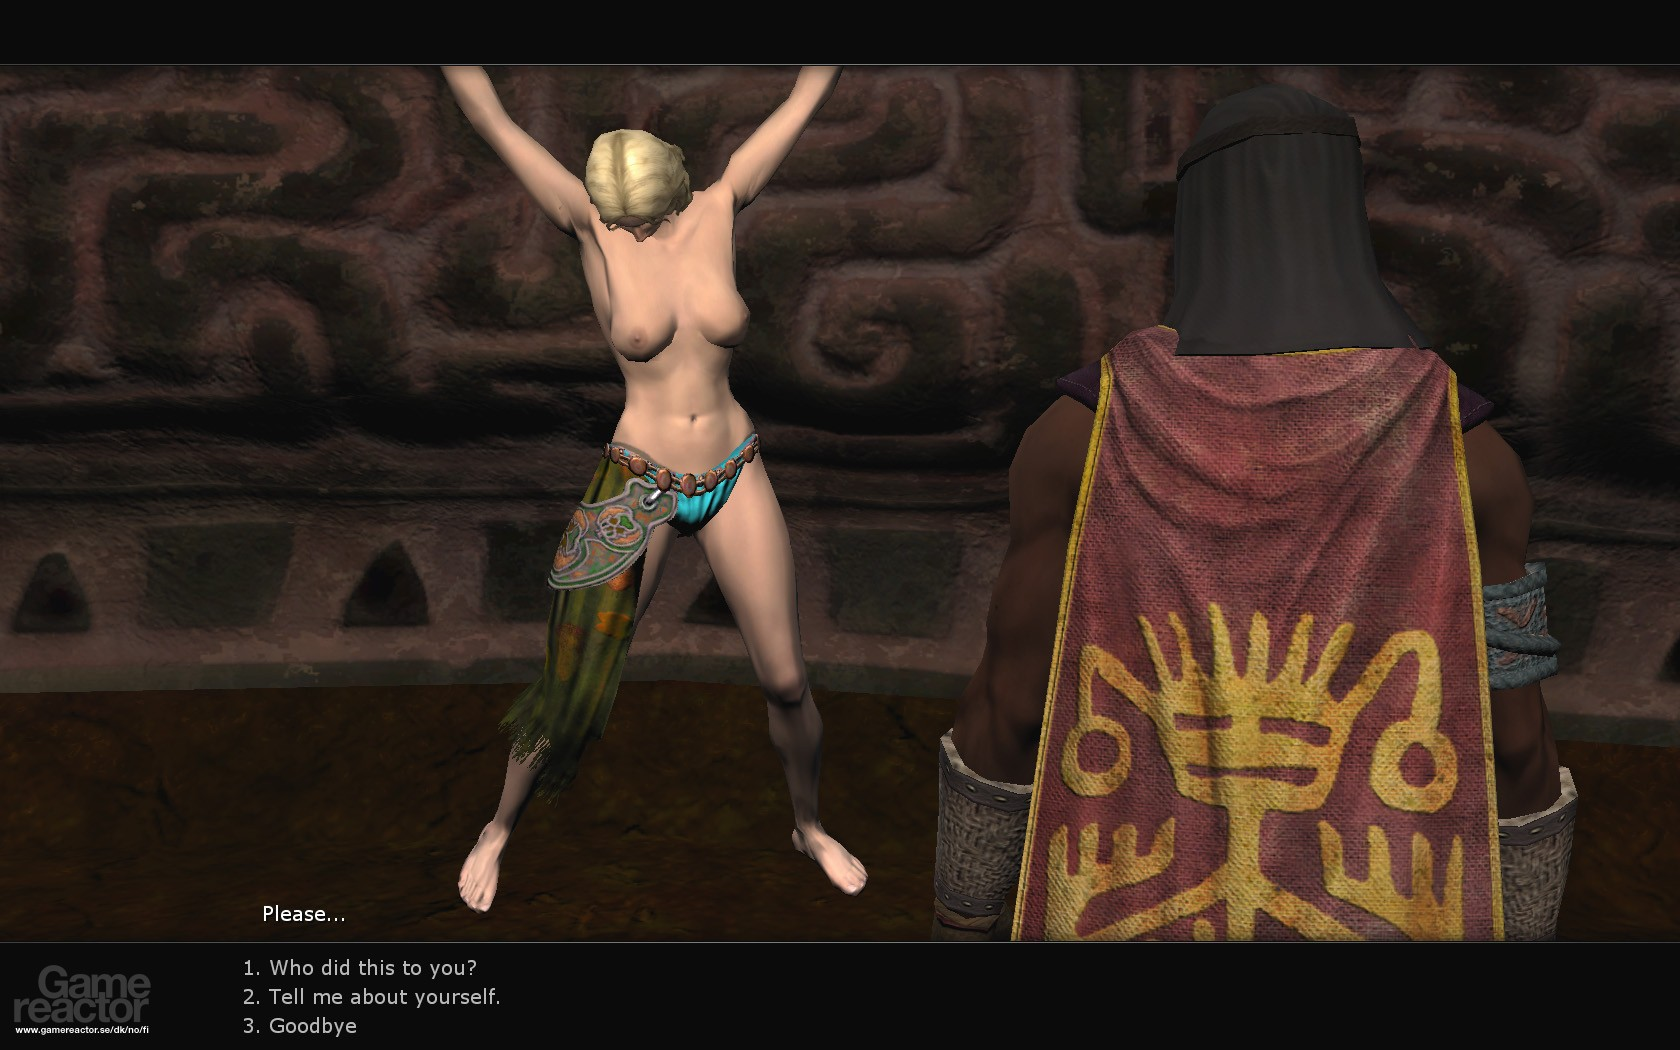 Age of conan unchained nude mod adult tube